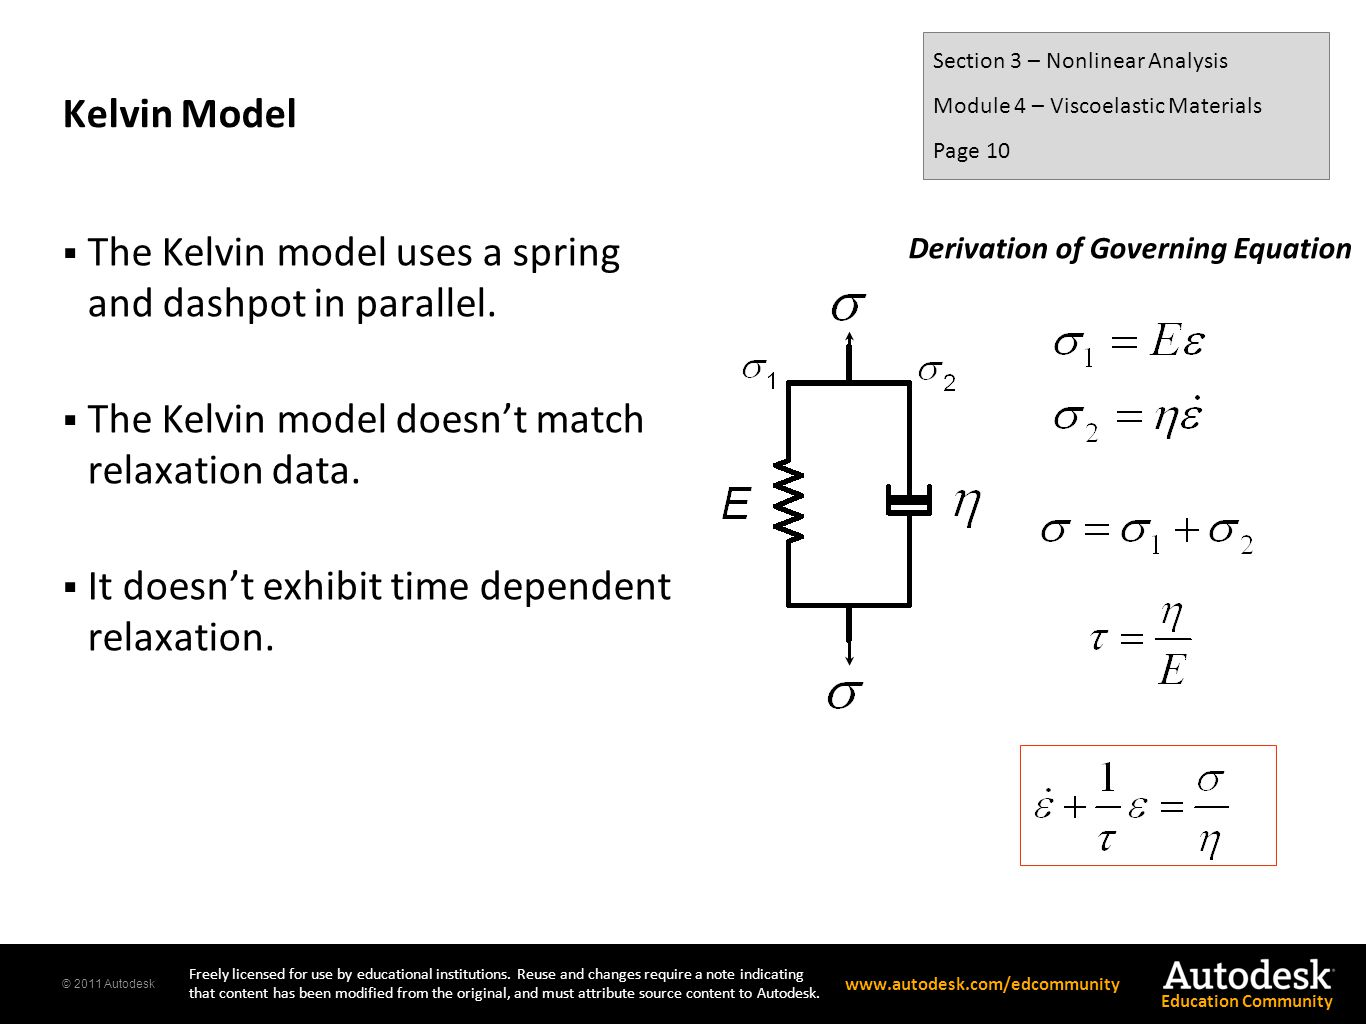 The Kelvin model uses a spring and dashpot in parallel.